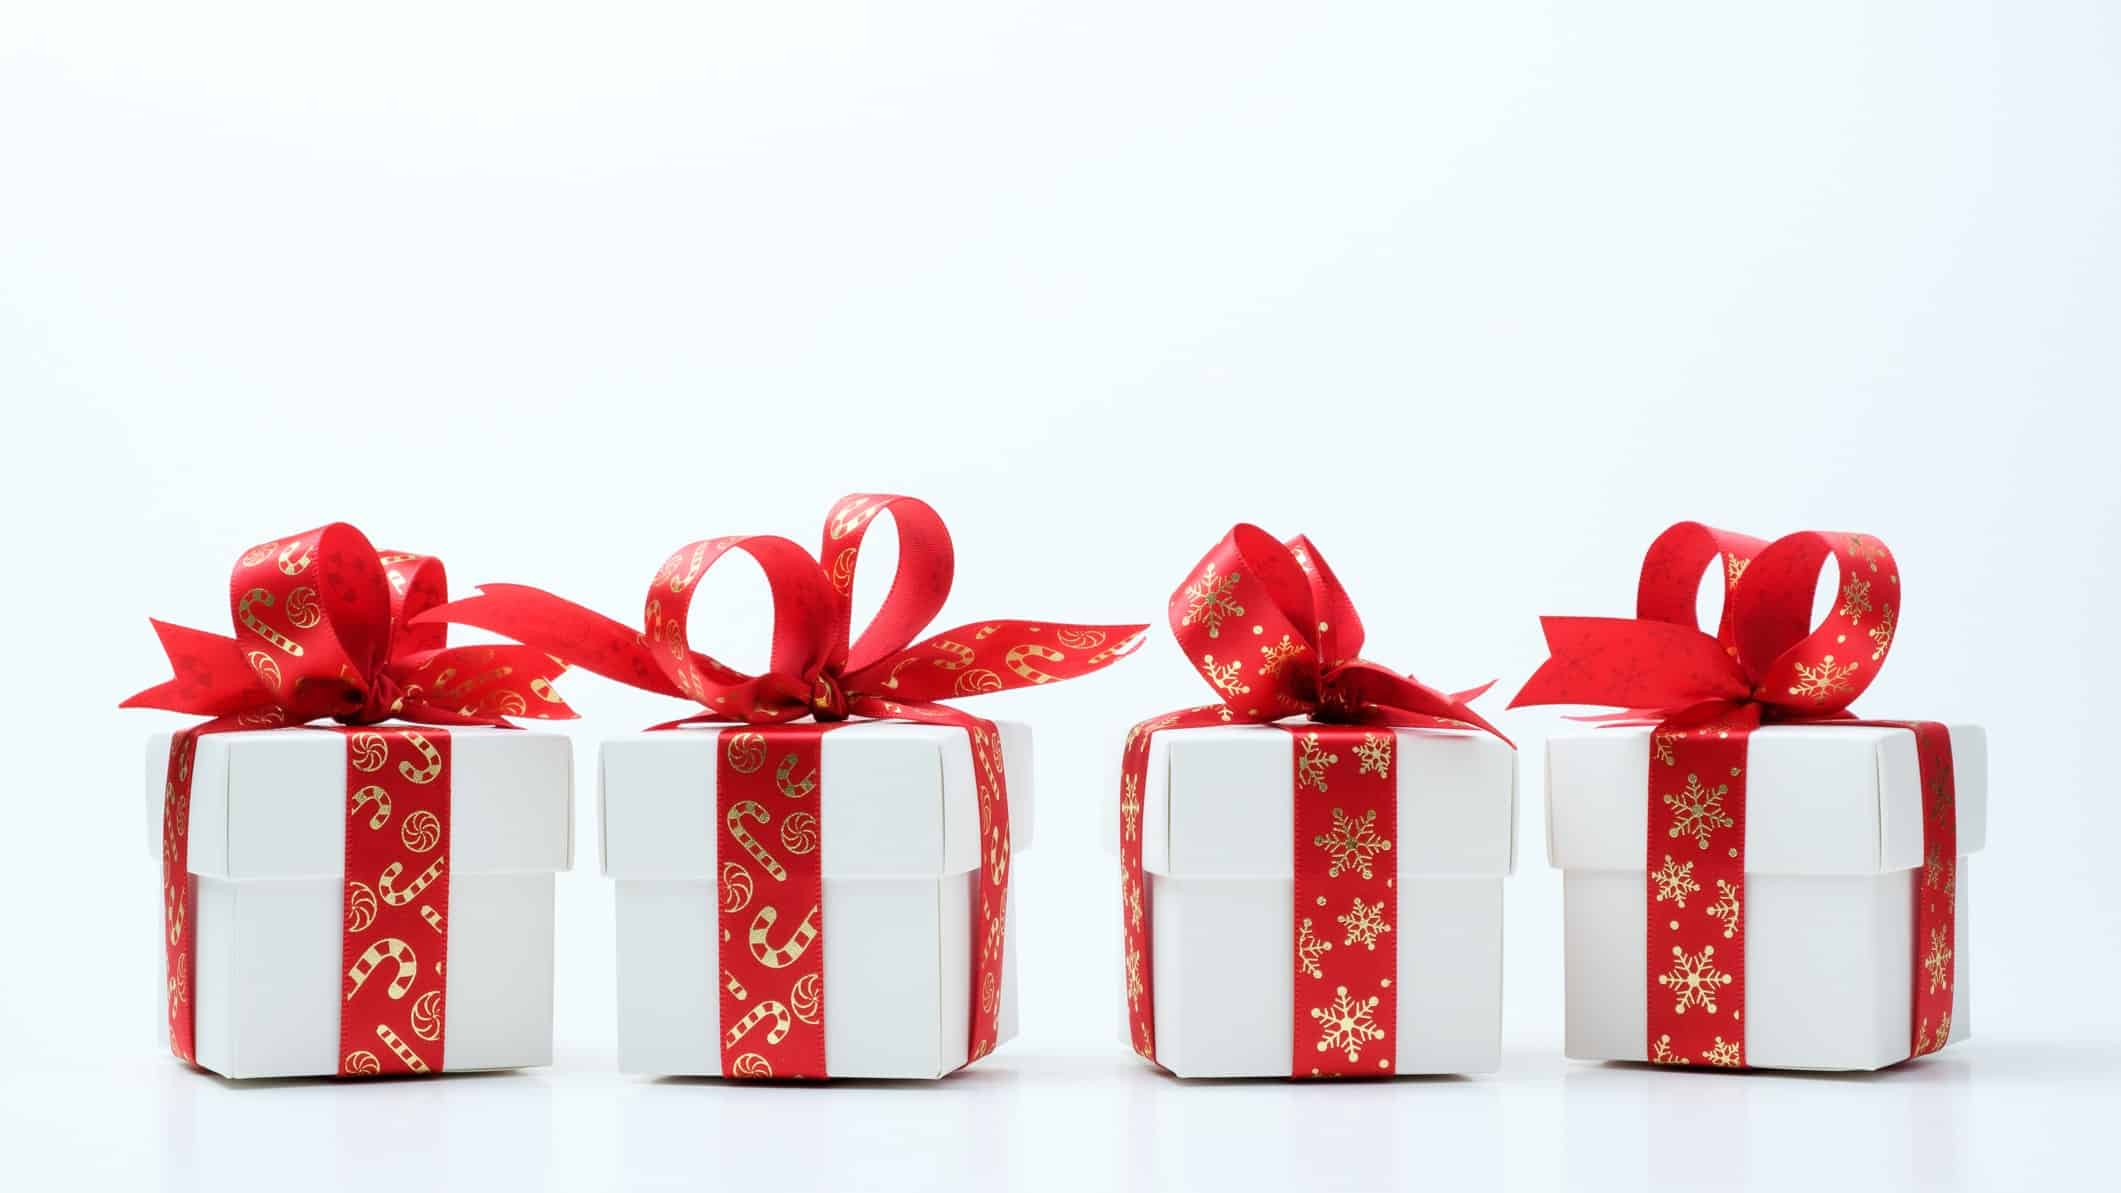 4 asx shares to buy for christmas represented by 4 little christmas presents